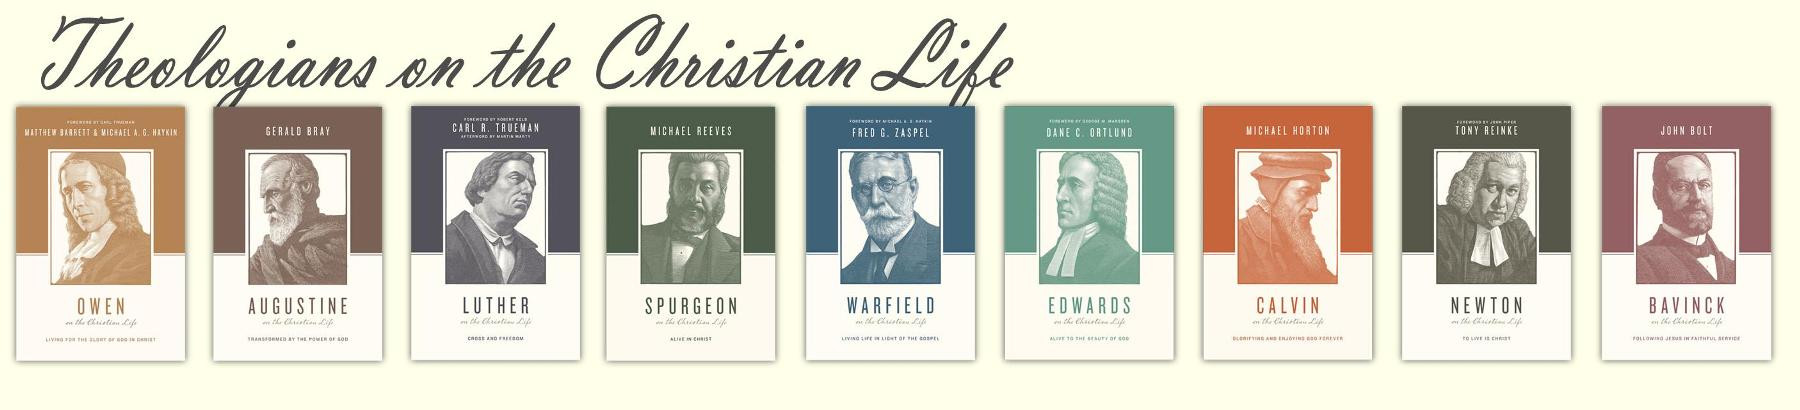 Theologians on the Christian Life